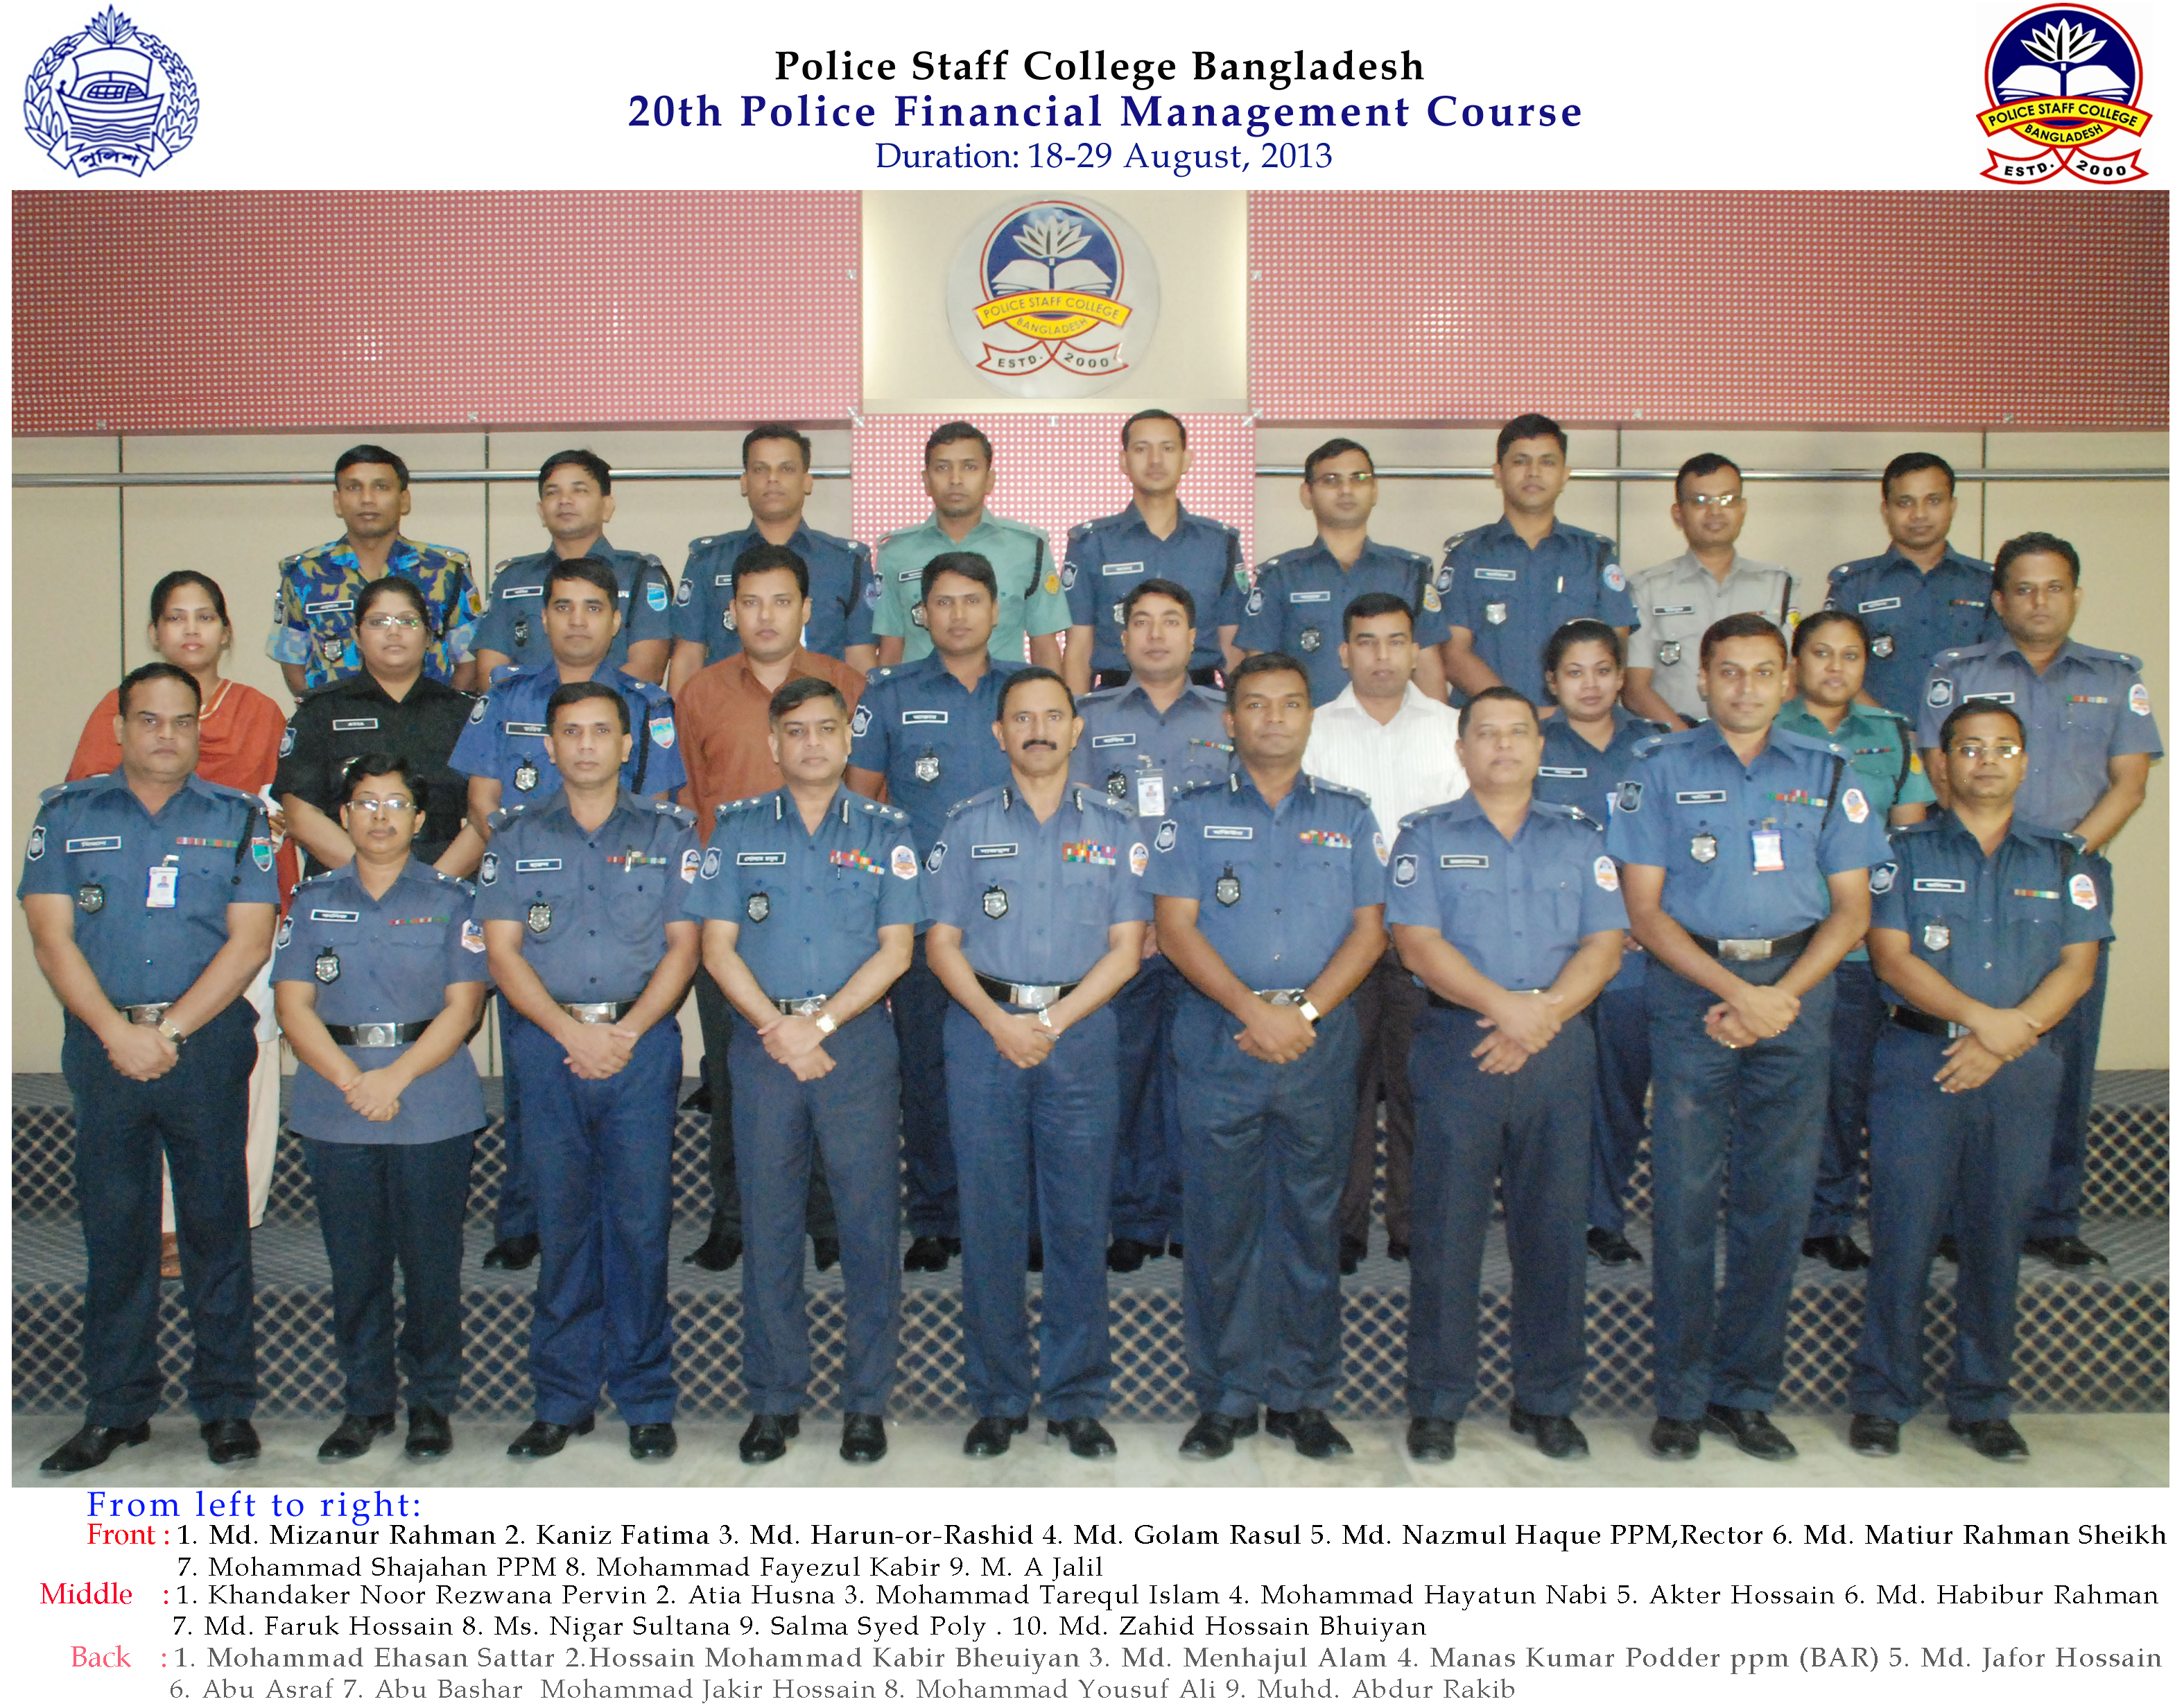 Participant of 20th Police Financial Management Certificate Course.